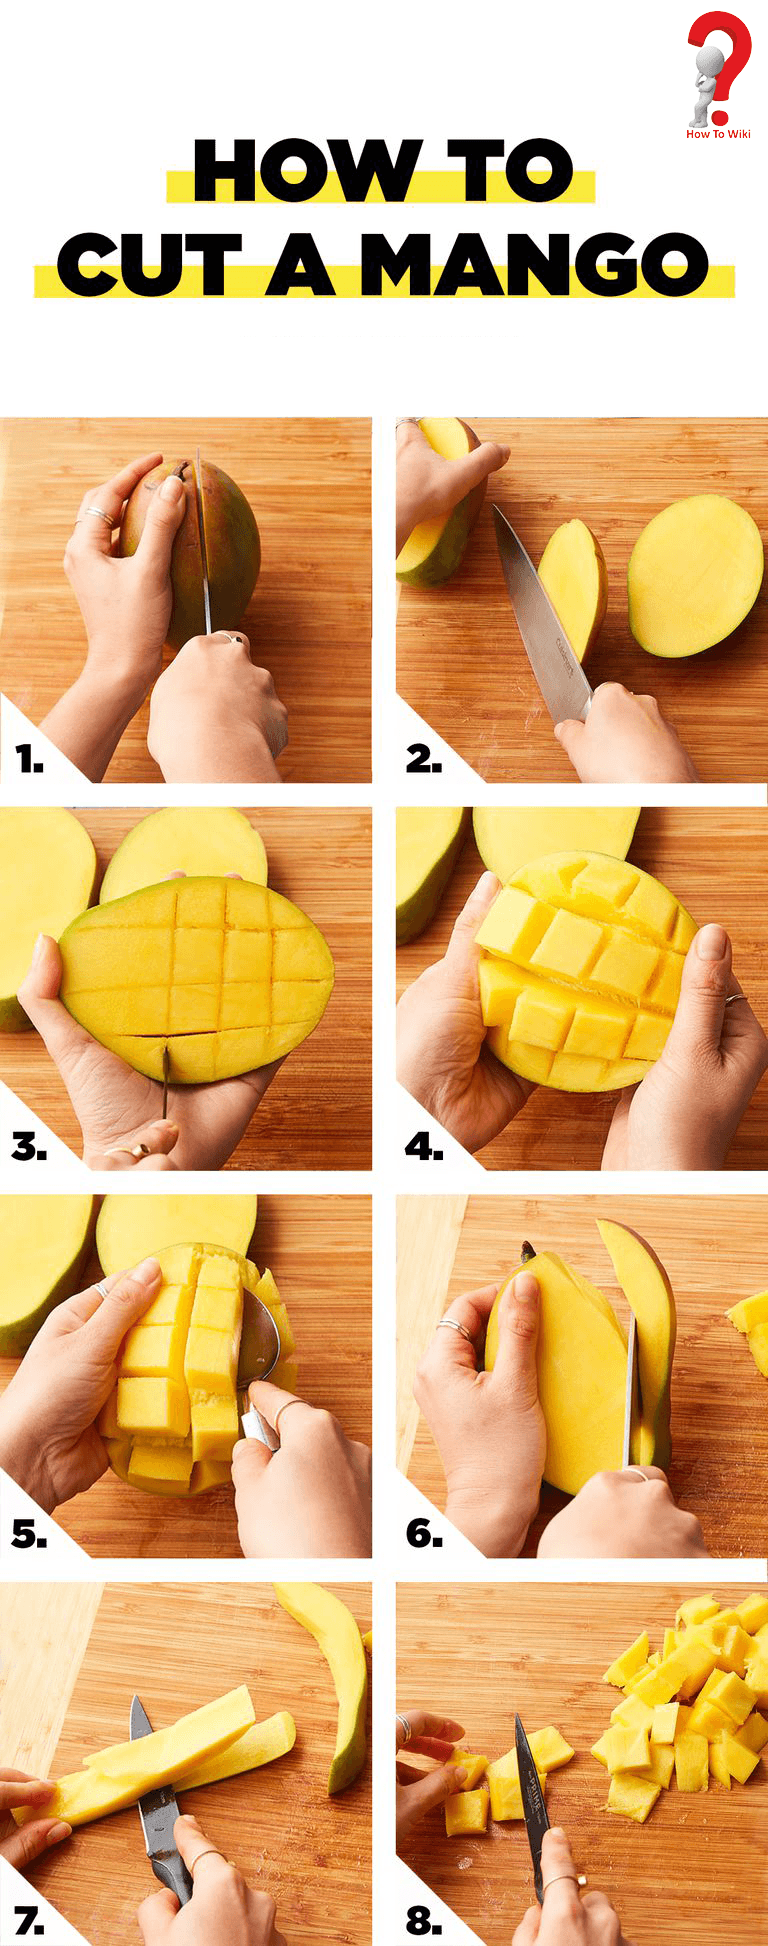 Mango cutting techniques